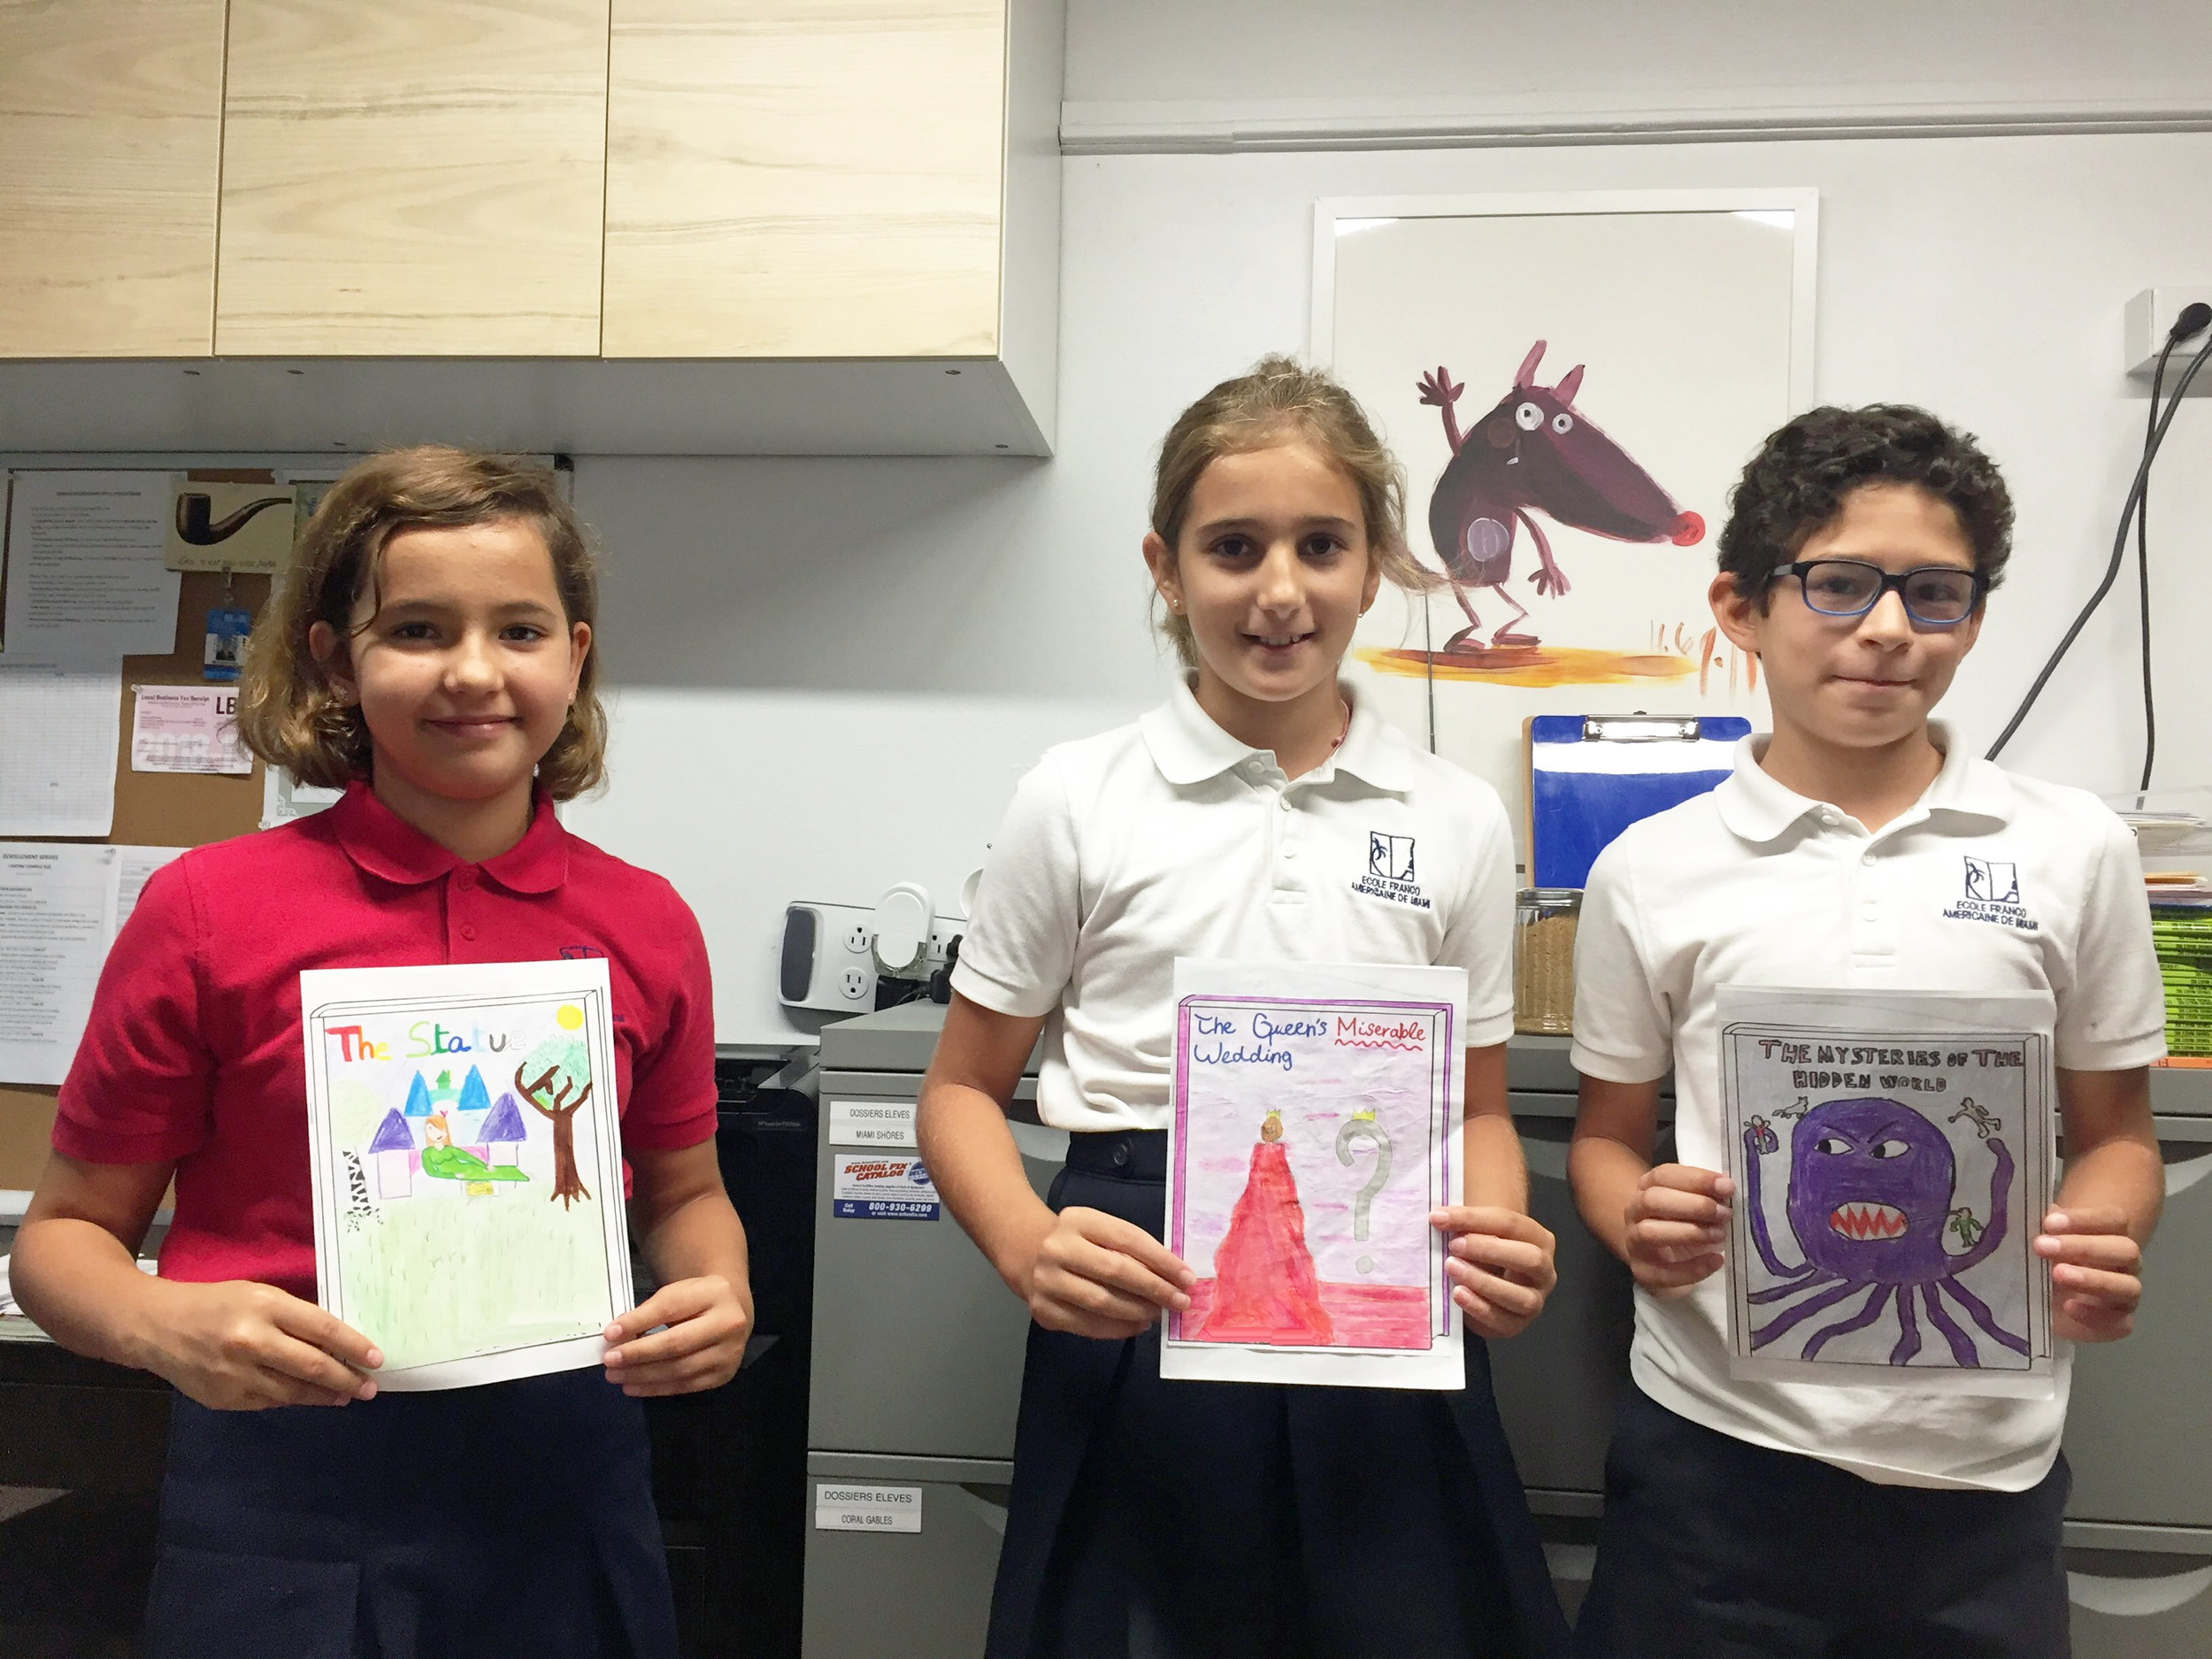 book-story-making-french-american-school-miami.jpg